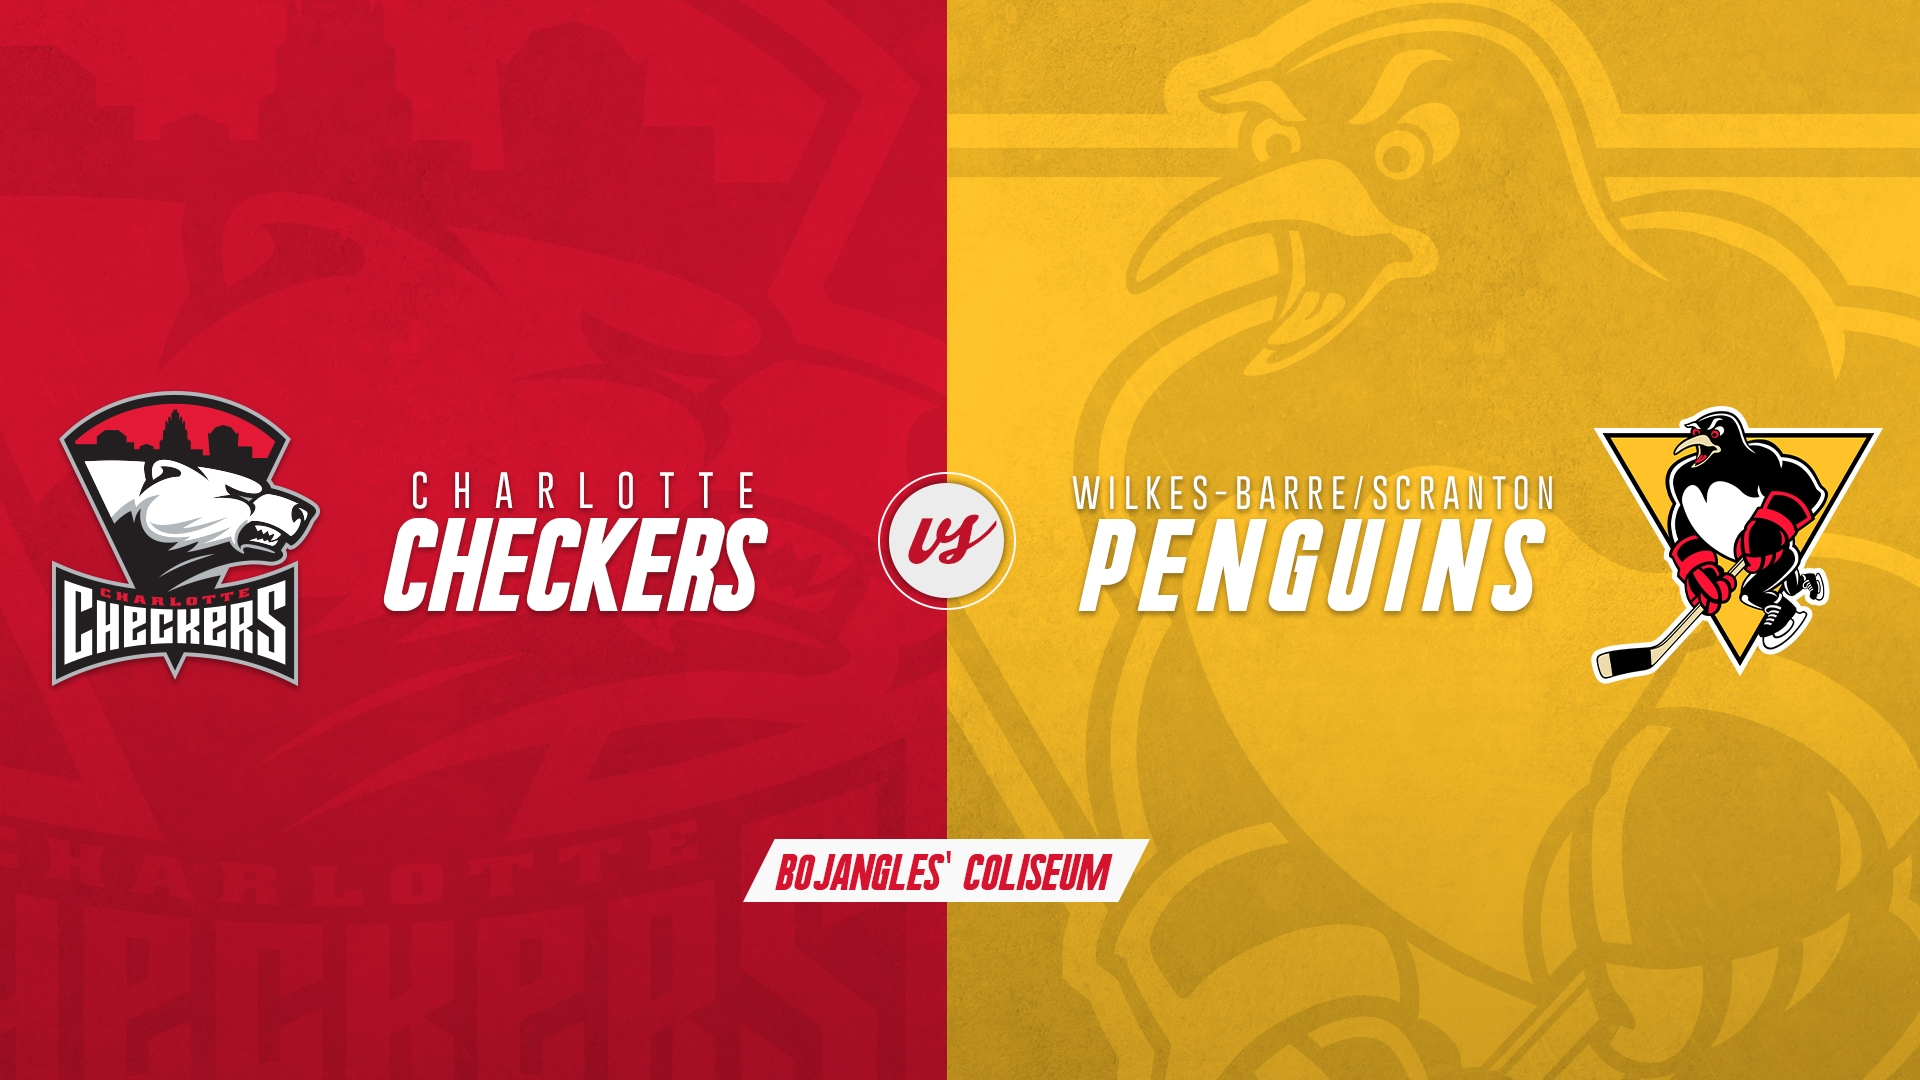 Charlotte Checkers vs. Wilkes Barre Scranton Penguins